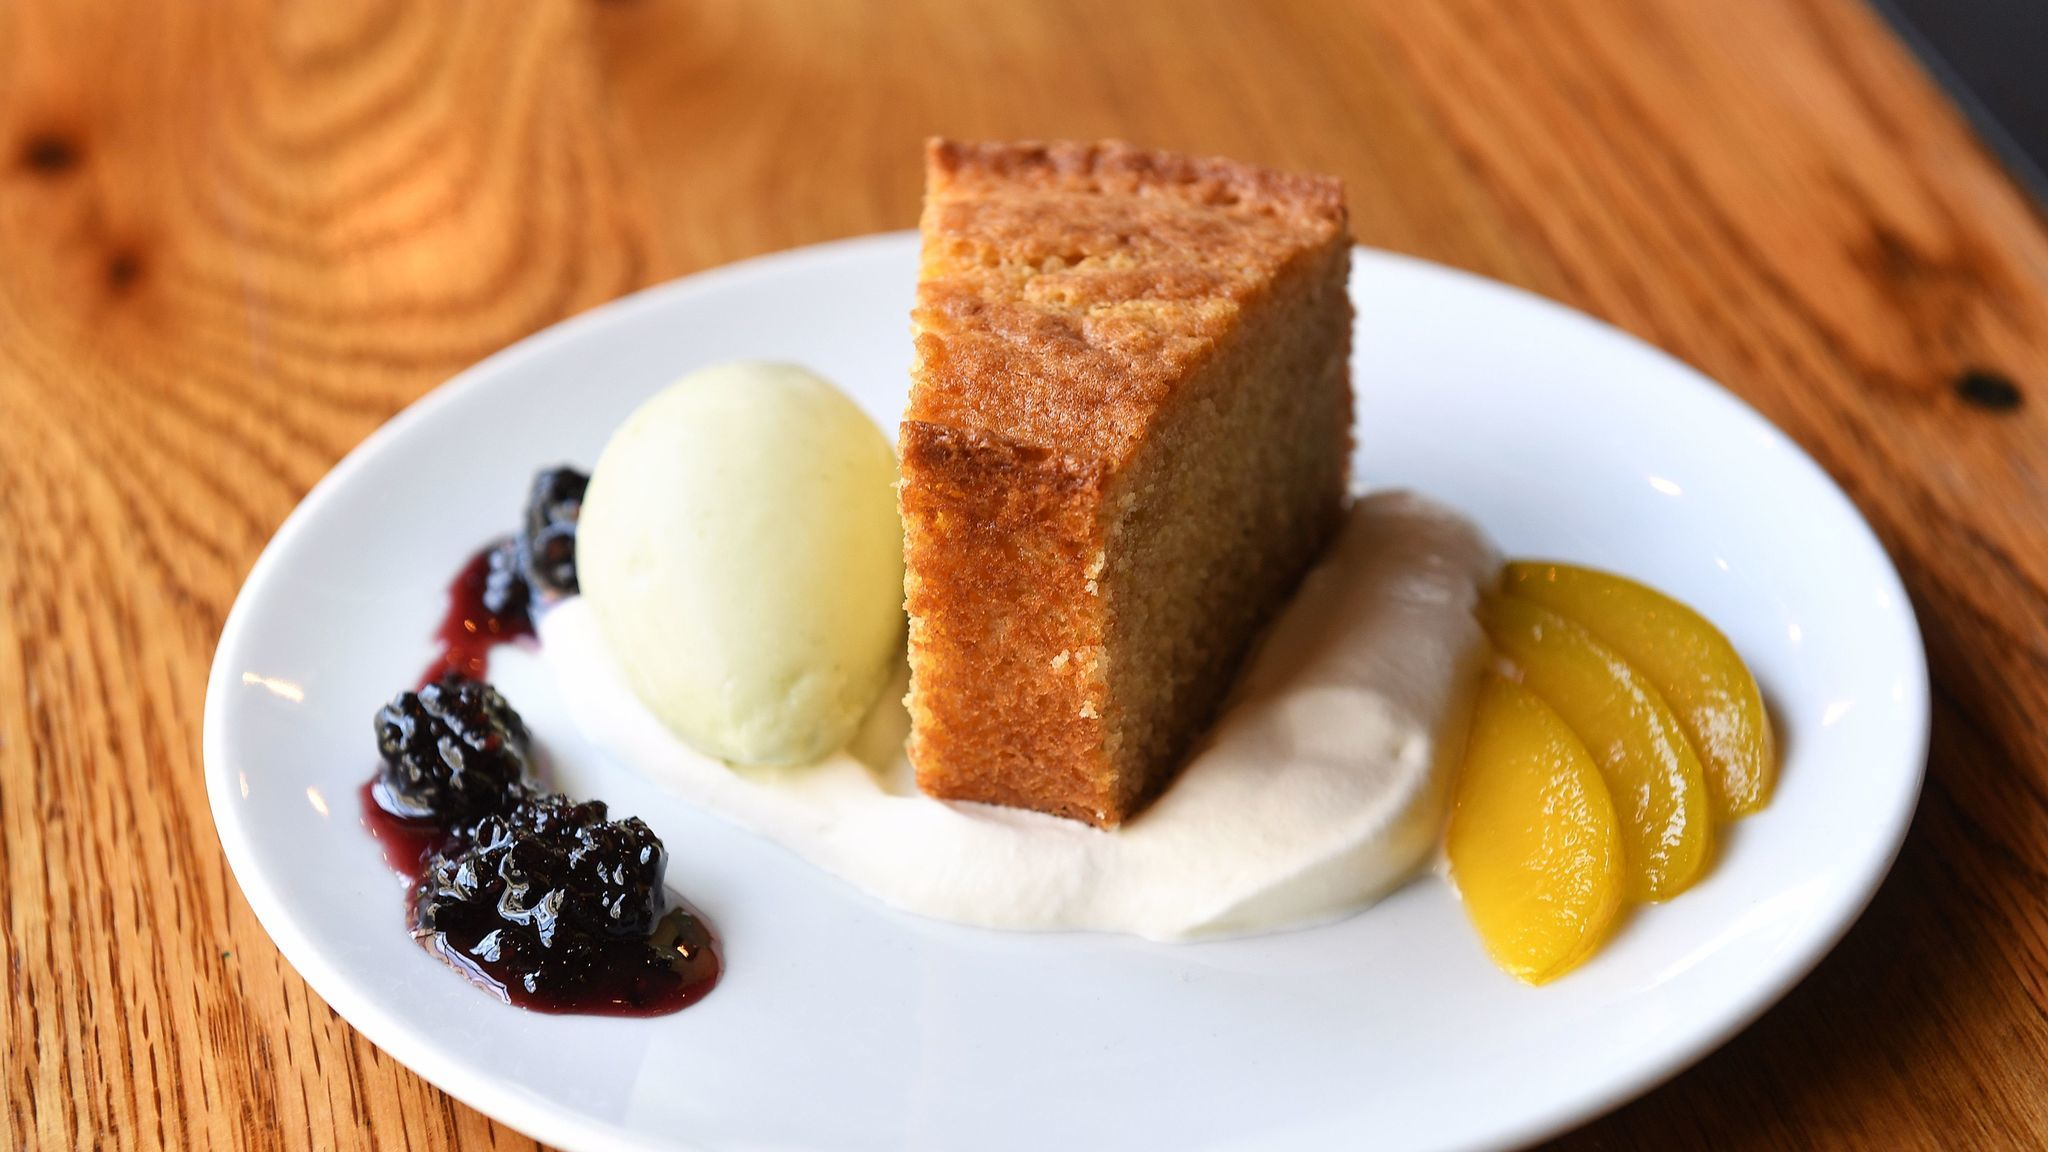 Einkorn buttermilk cake with lemon verbena and lemon sherbet, fermented blackberry jam and emerald plums is on the menu at Bestia in Los Angeles.